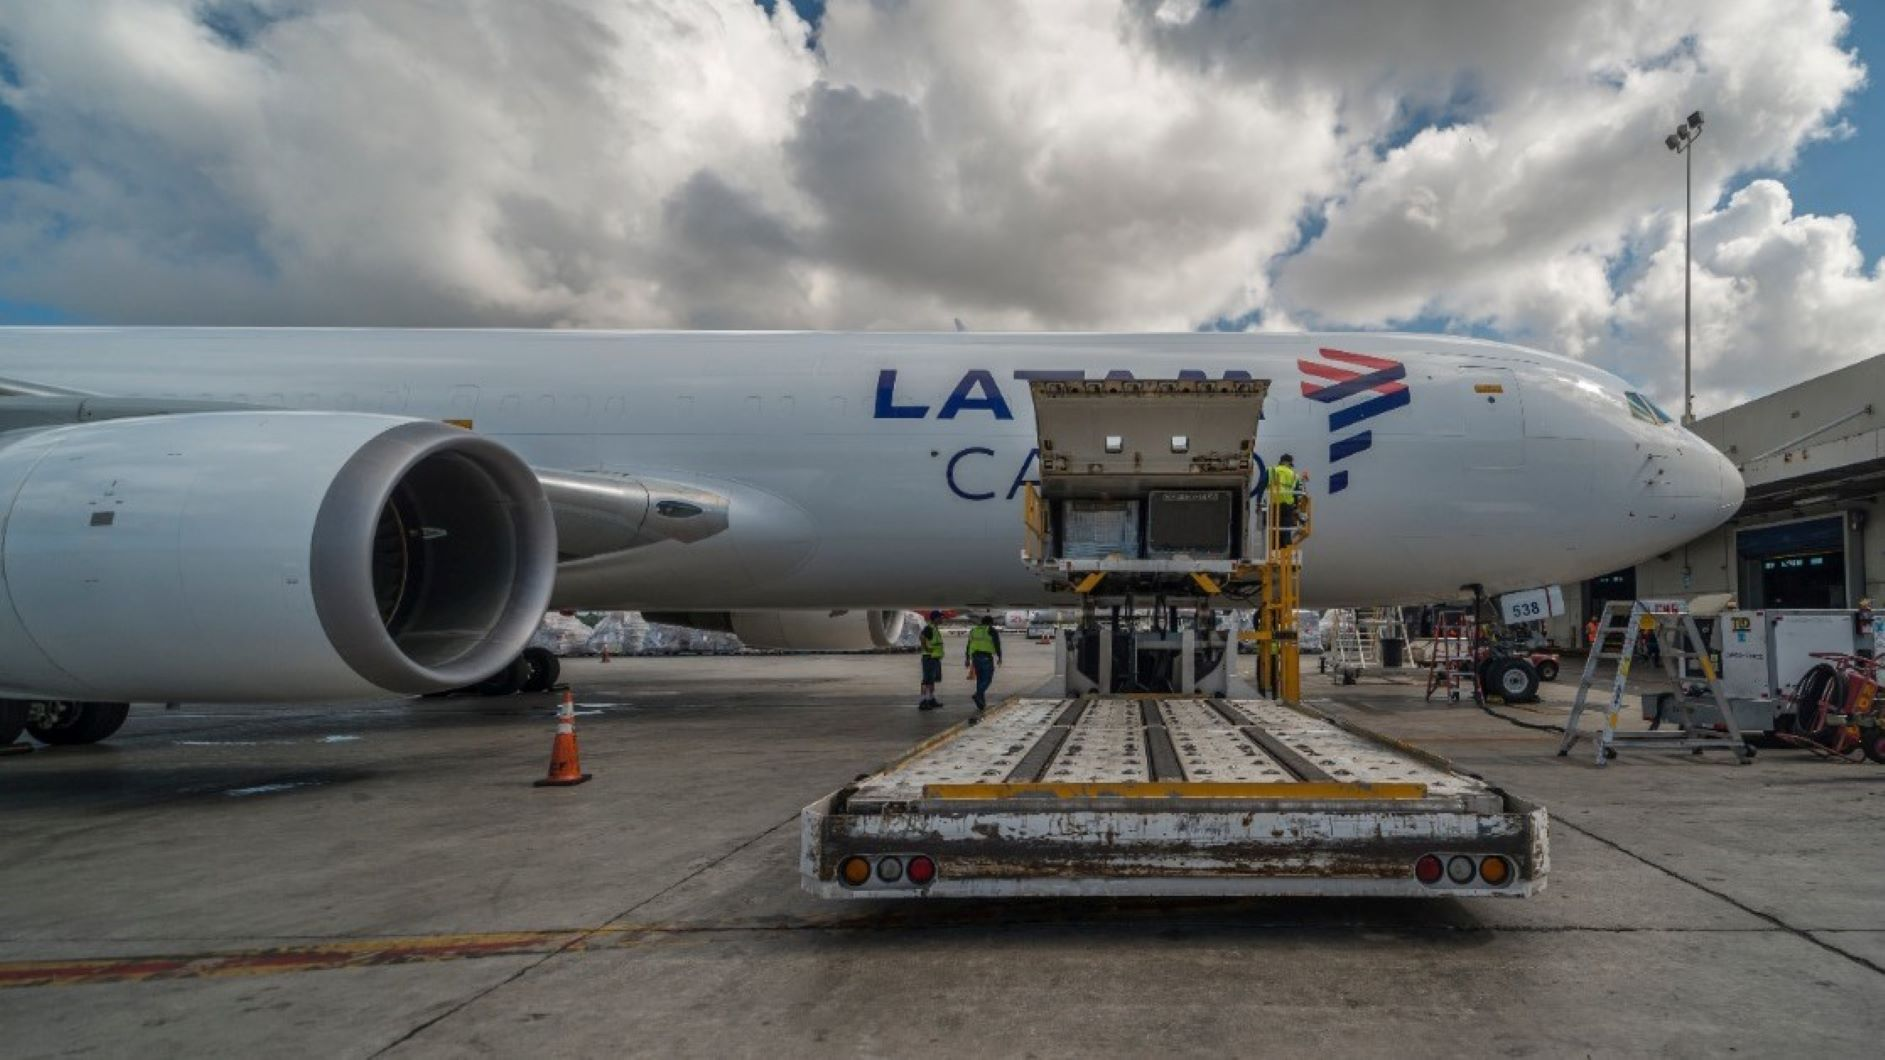 Side view of a white cargo jet with the side door wide open and a dolly in the foreground.